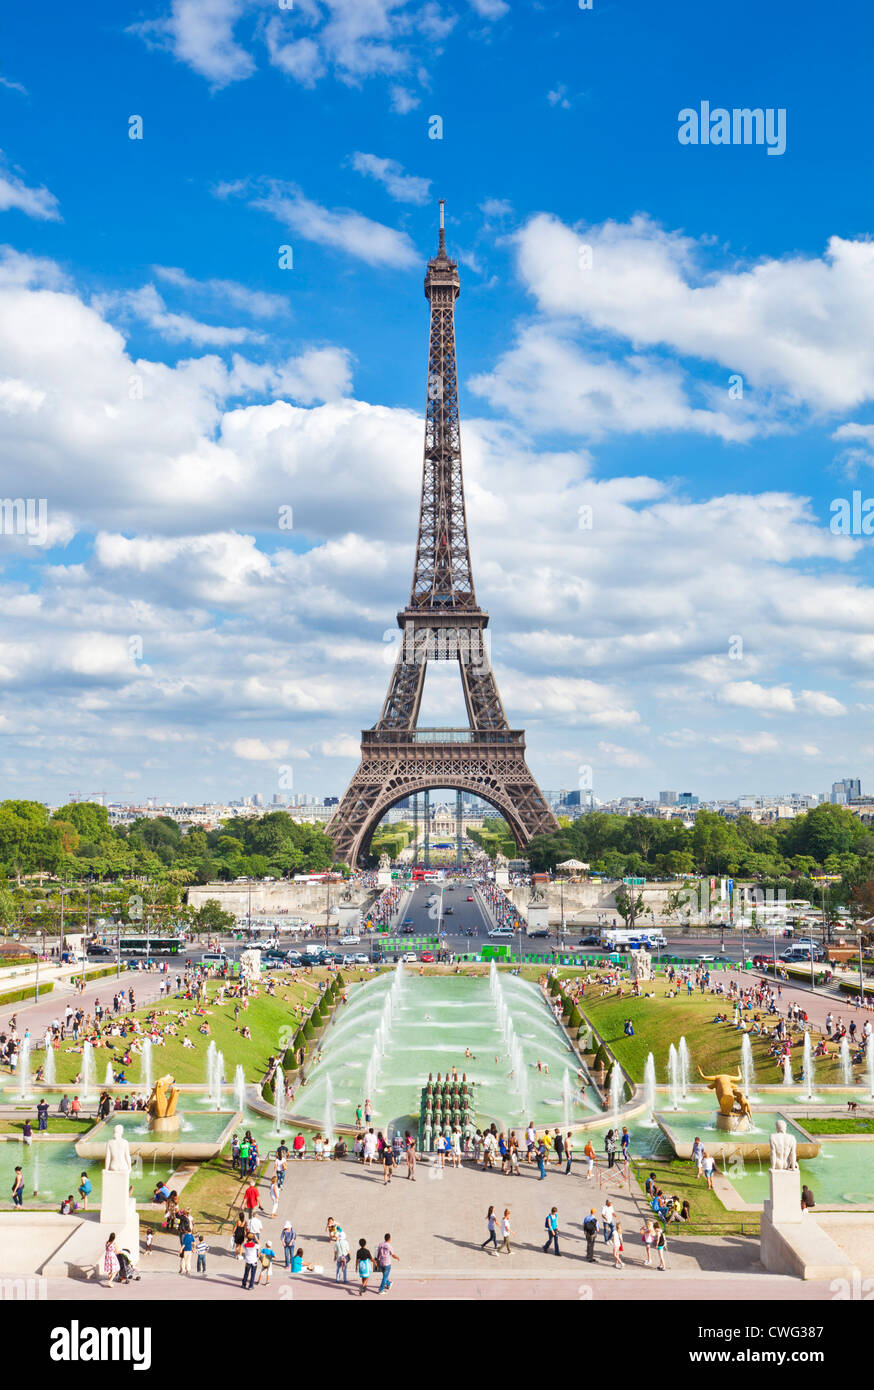 Eiffel tower Paris Eiffel tower from the Trocadero fountains France Europe EU - Stock Image